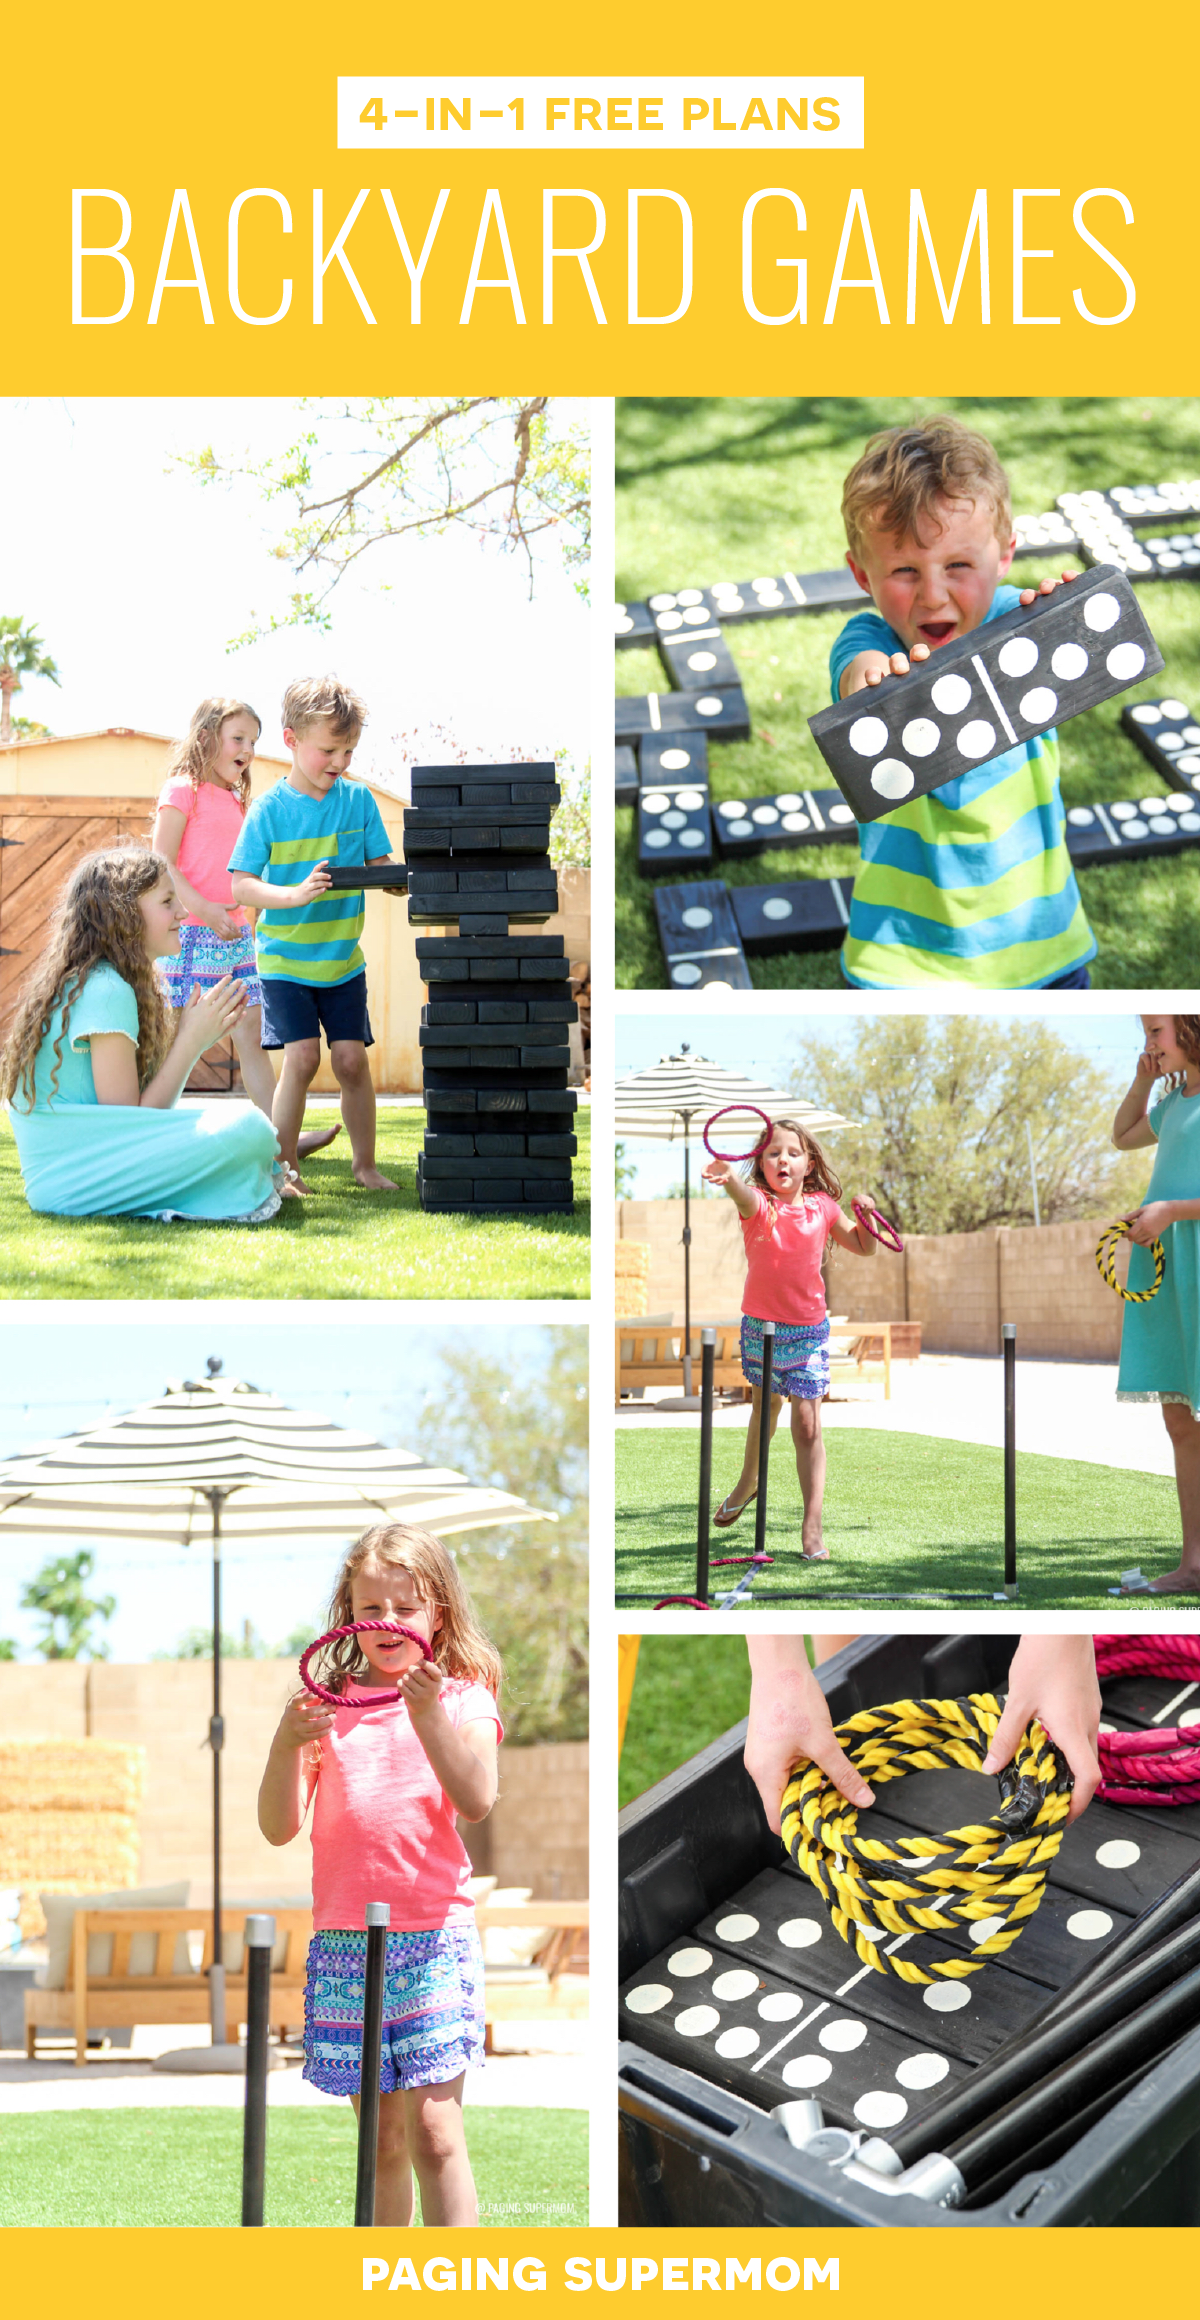 Set of 4-in-1 DIY Backyard Games plans from @HomeDepot via @PagingSupermom